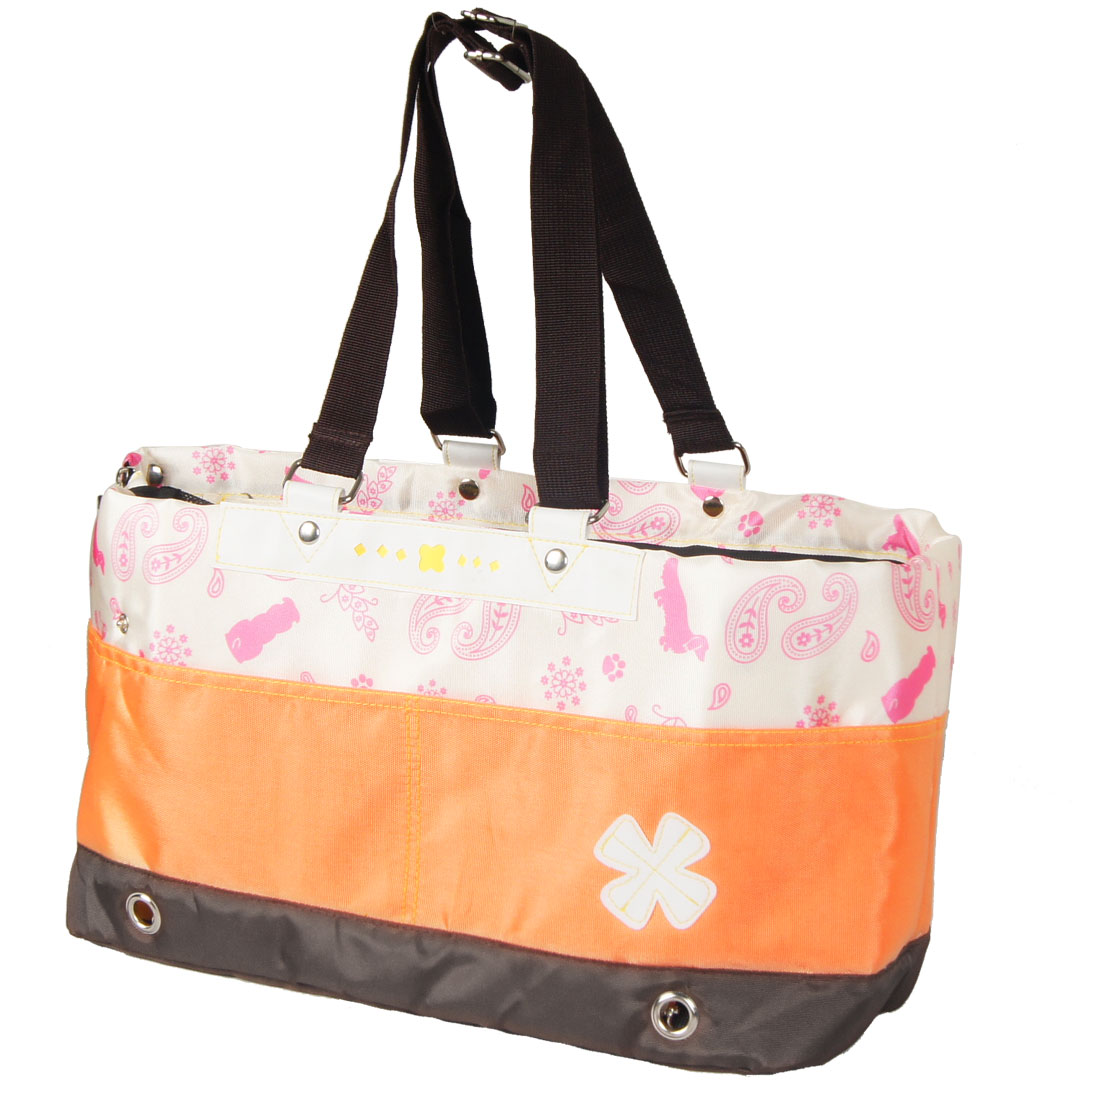 Orange Nylon Soft Pet Puppy Dog Cat Carrier Trabeling Carrying Tote Bag Backpack